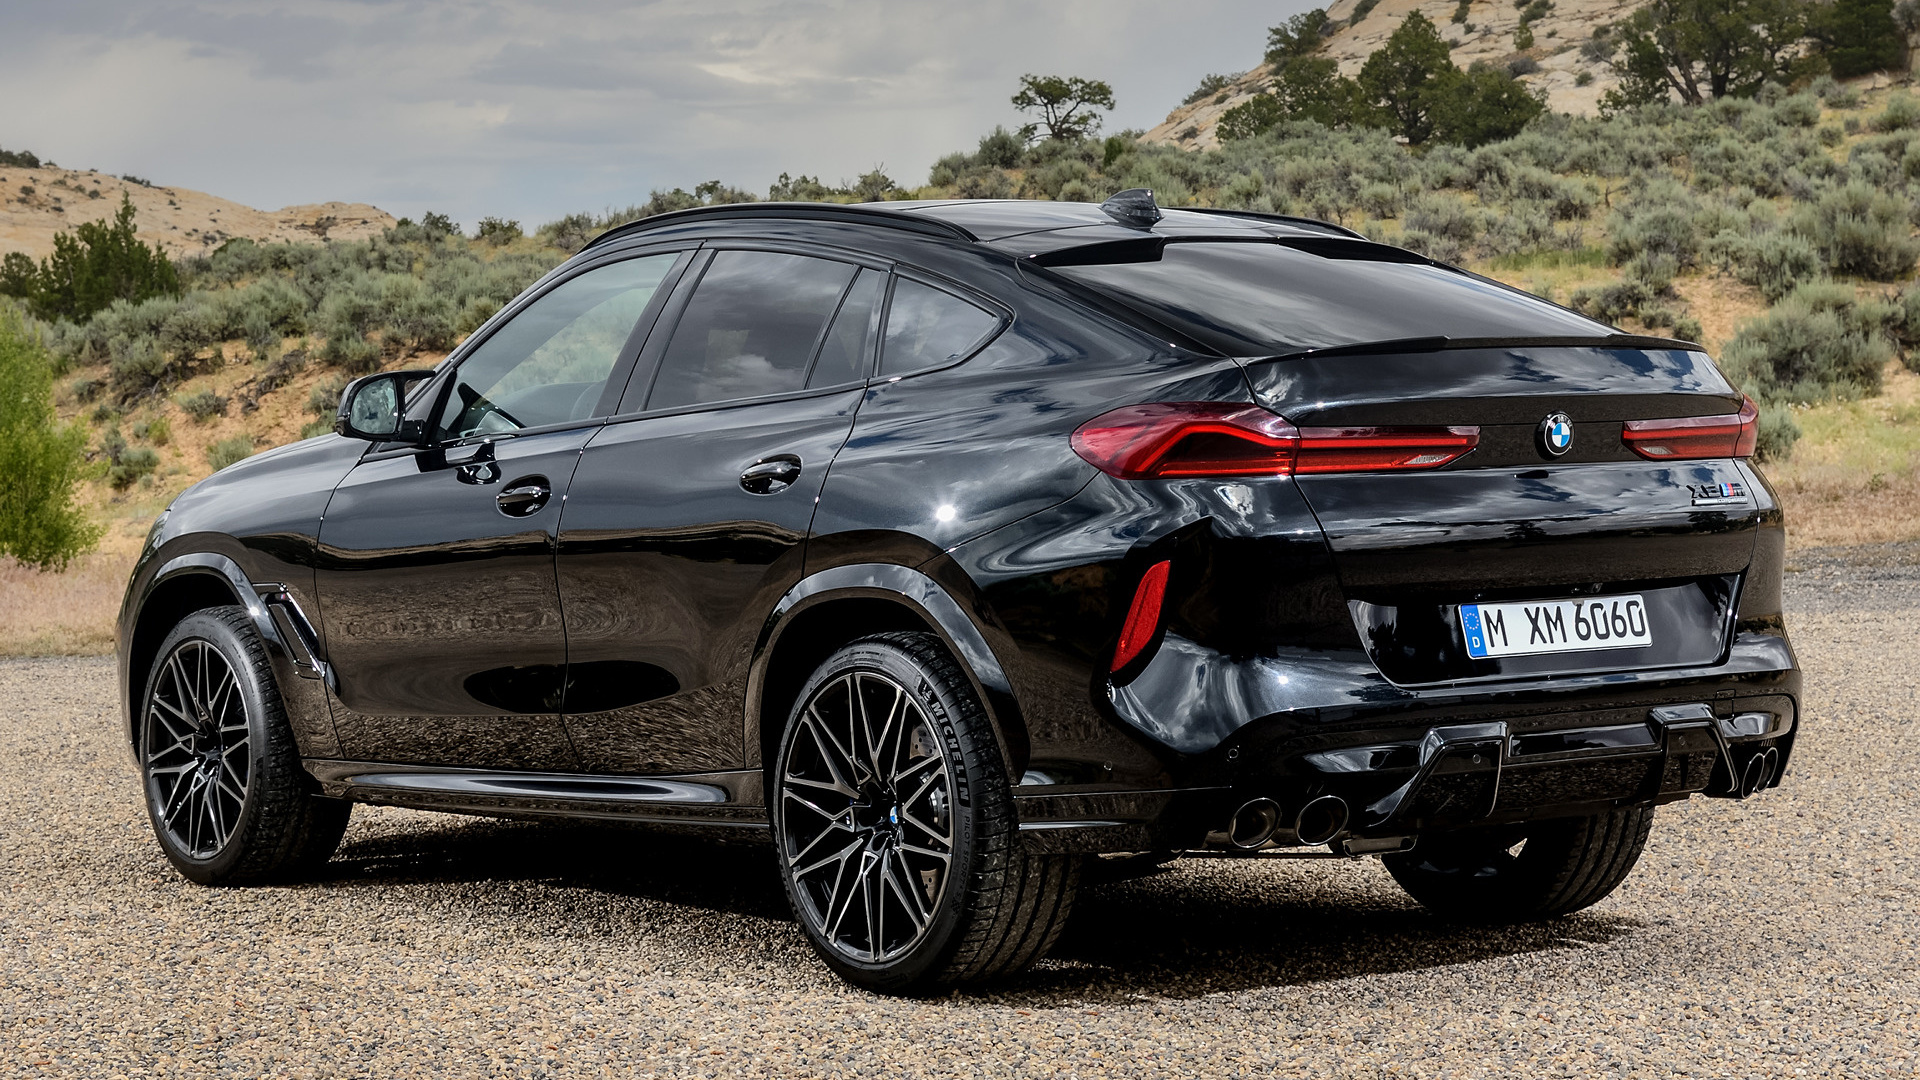 2019 Bmw X6 M Competition Wallpapers And Hd Images Car